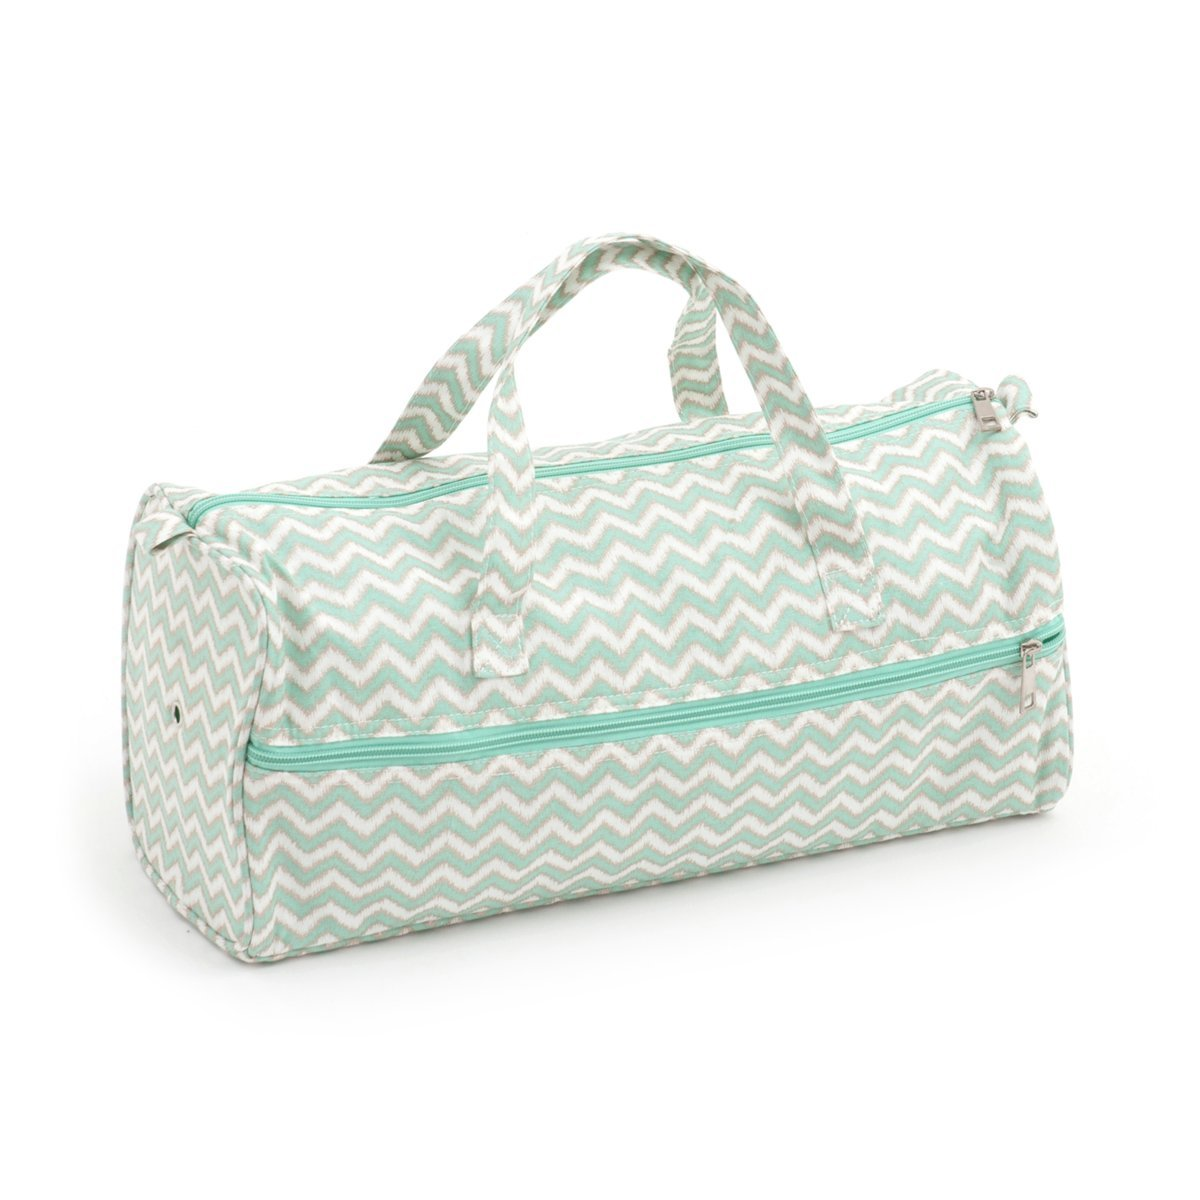 HobbyGift Groves esclusivo: knitting bag: scribble chevron, misto cotone, assortiti, 15 x 42 x 17.7 cm MR4698\269